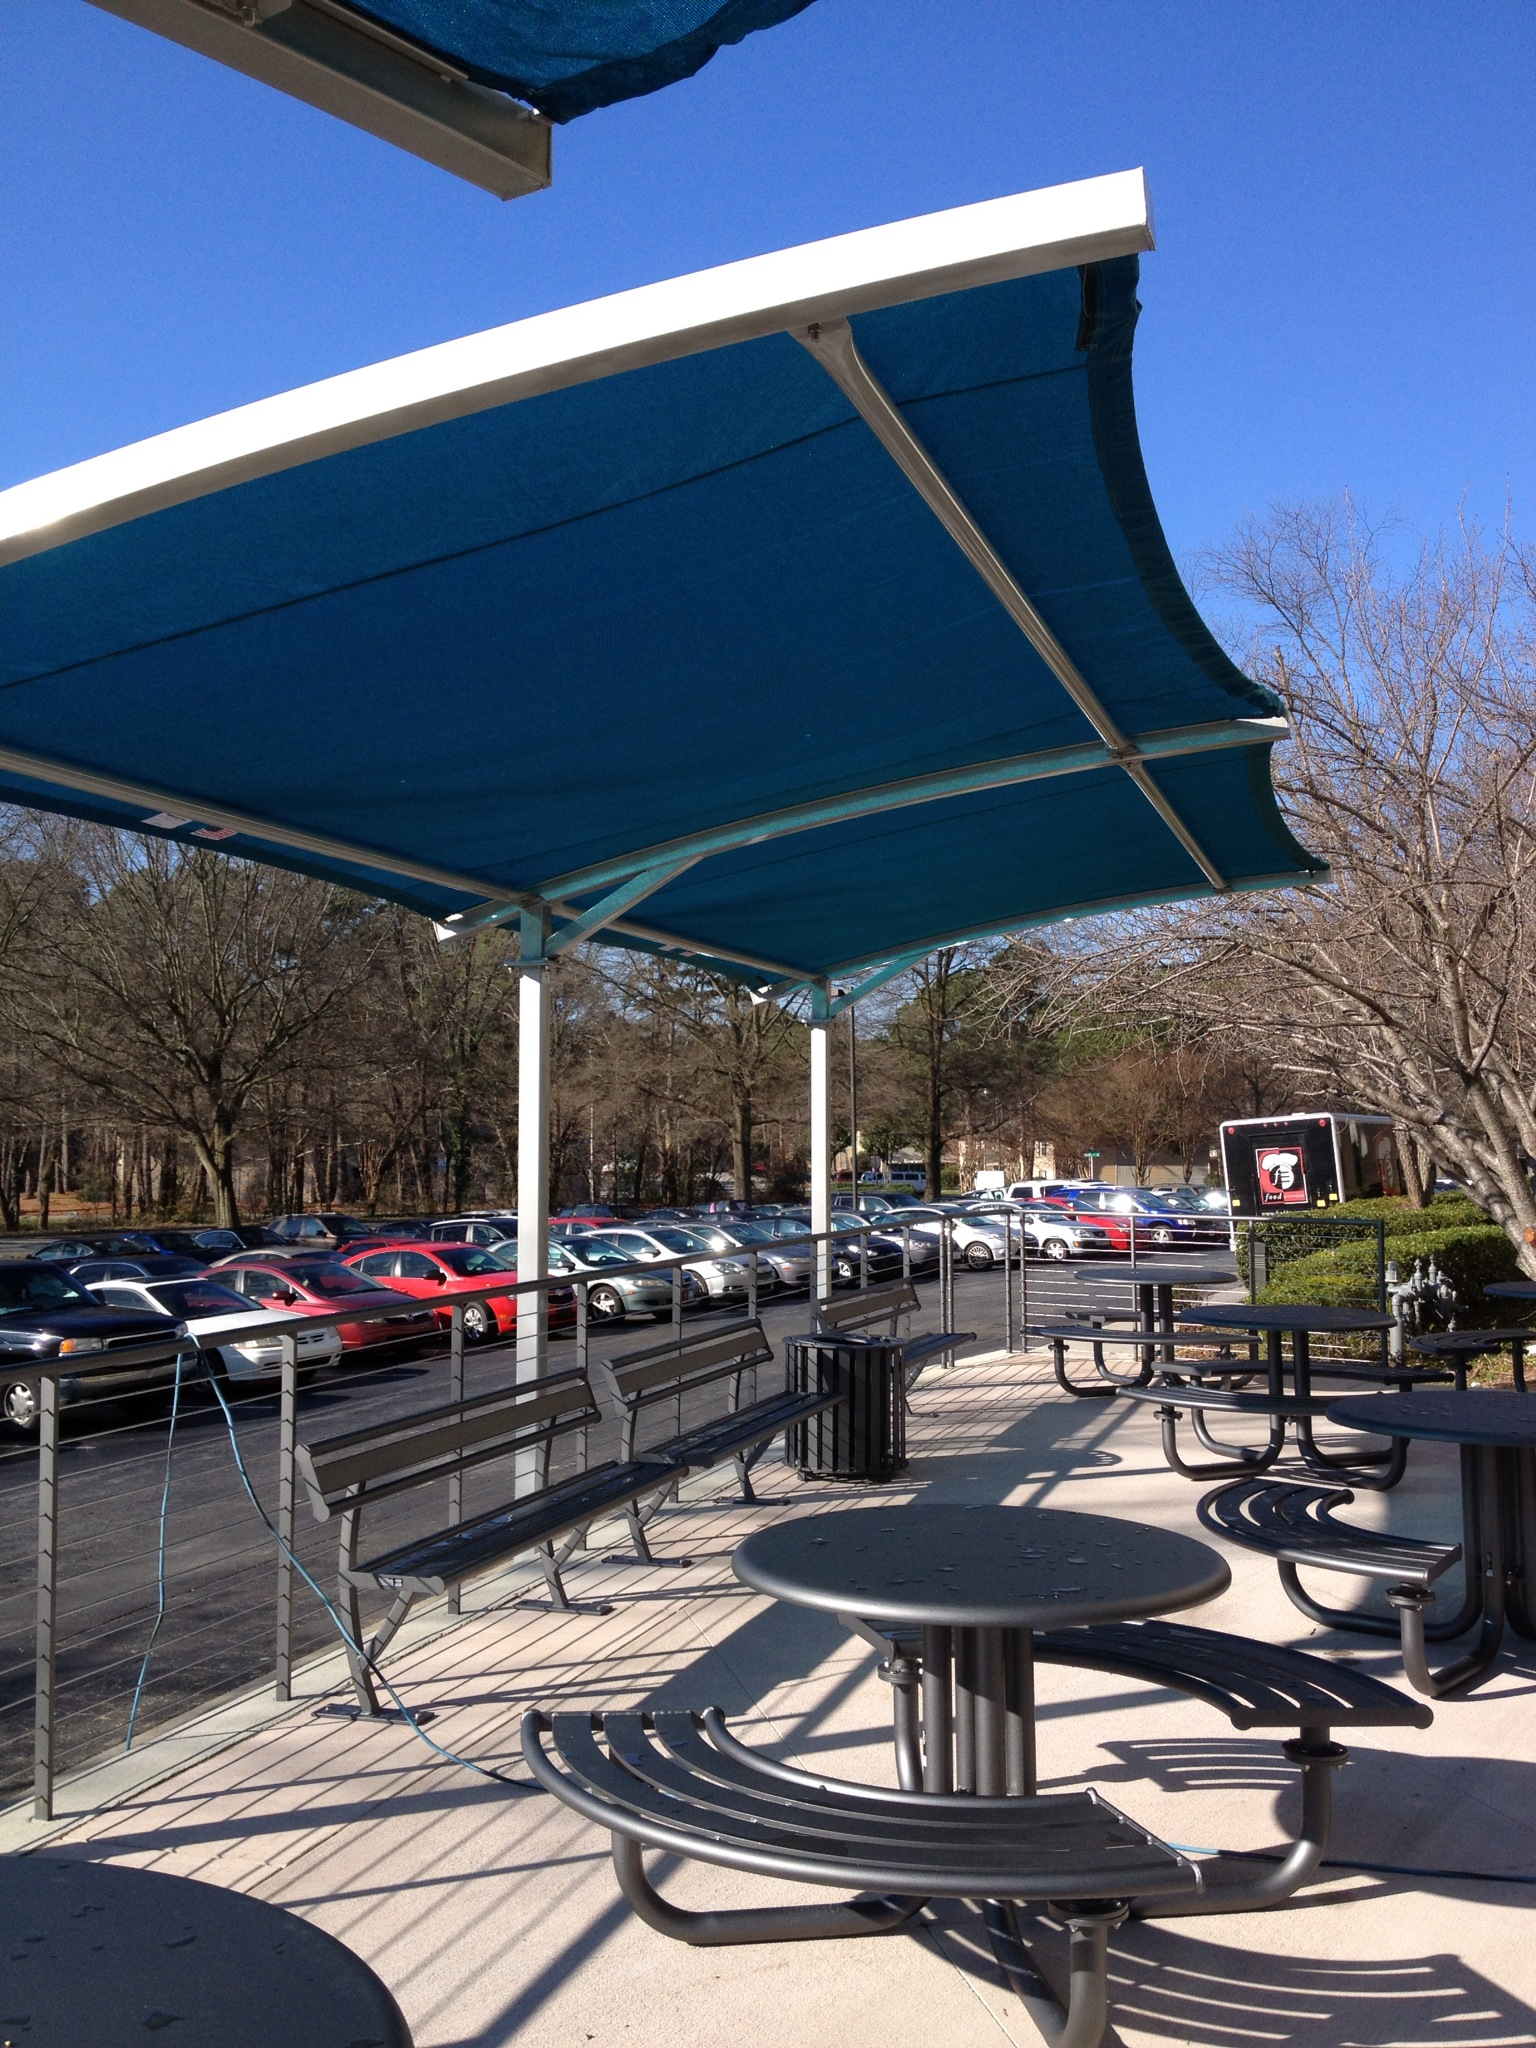 Office renovations expand to exterior shade structures for Shade structures